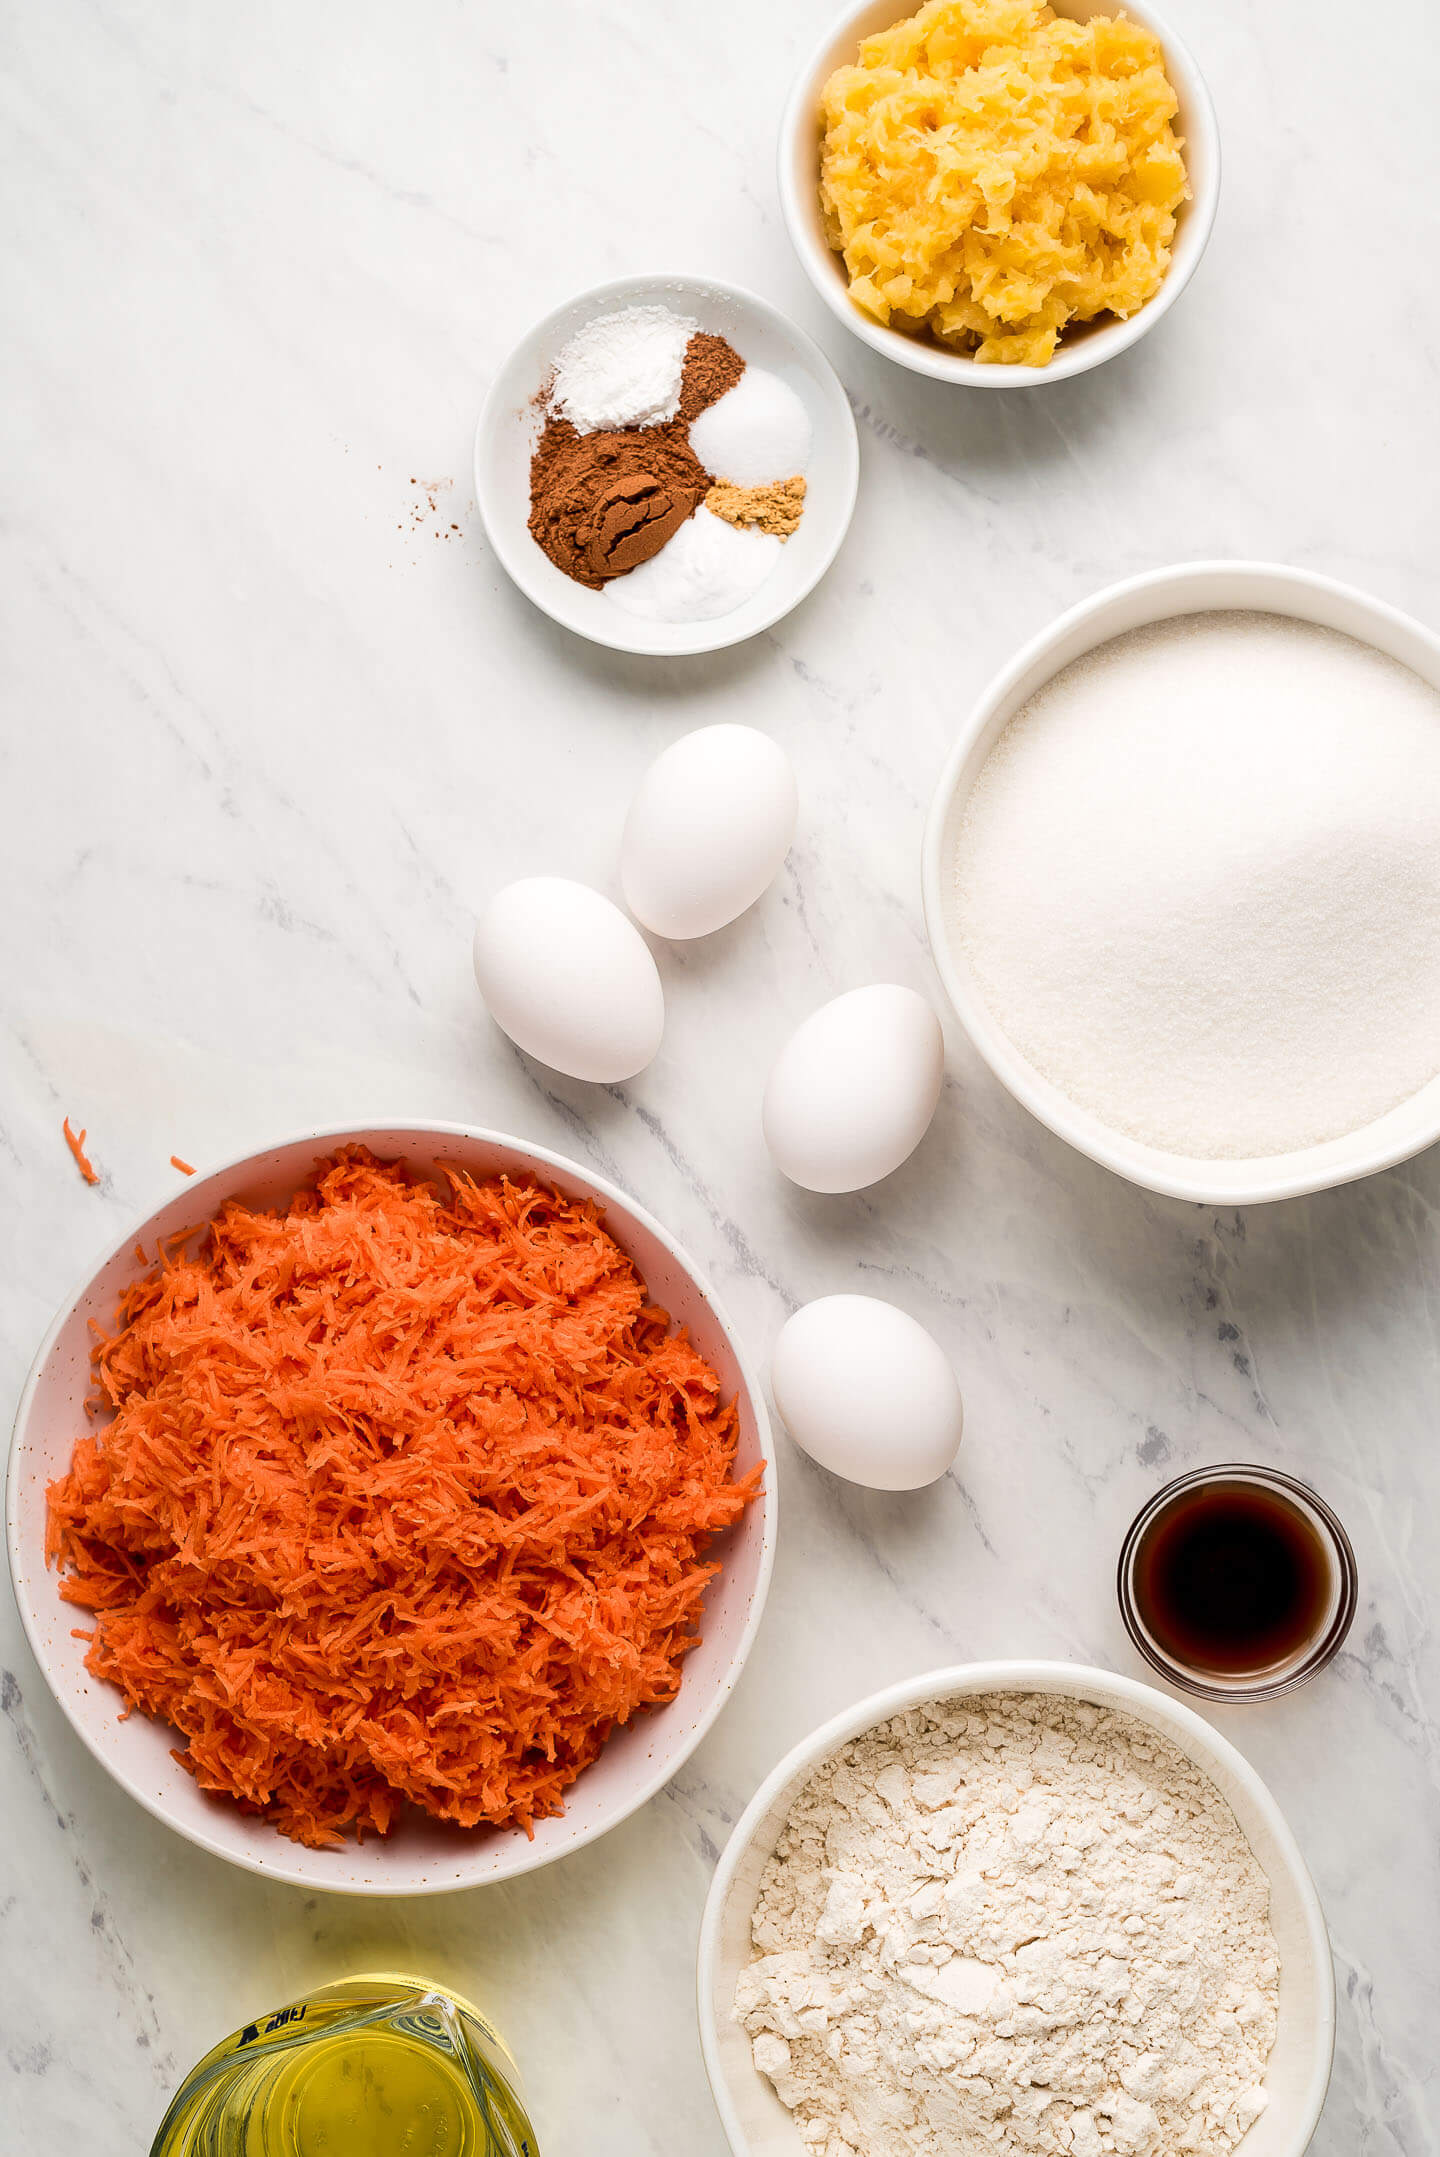 Ingredients on a marble surface- crushed pineapple, spices, eggs, sugar, shredded carrots, vanilla extract, flour, and oil.